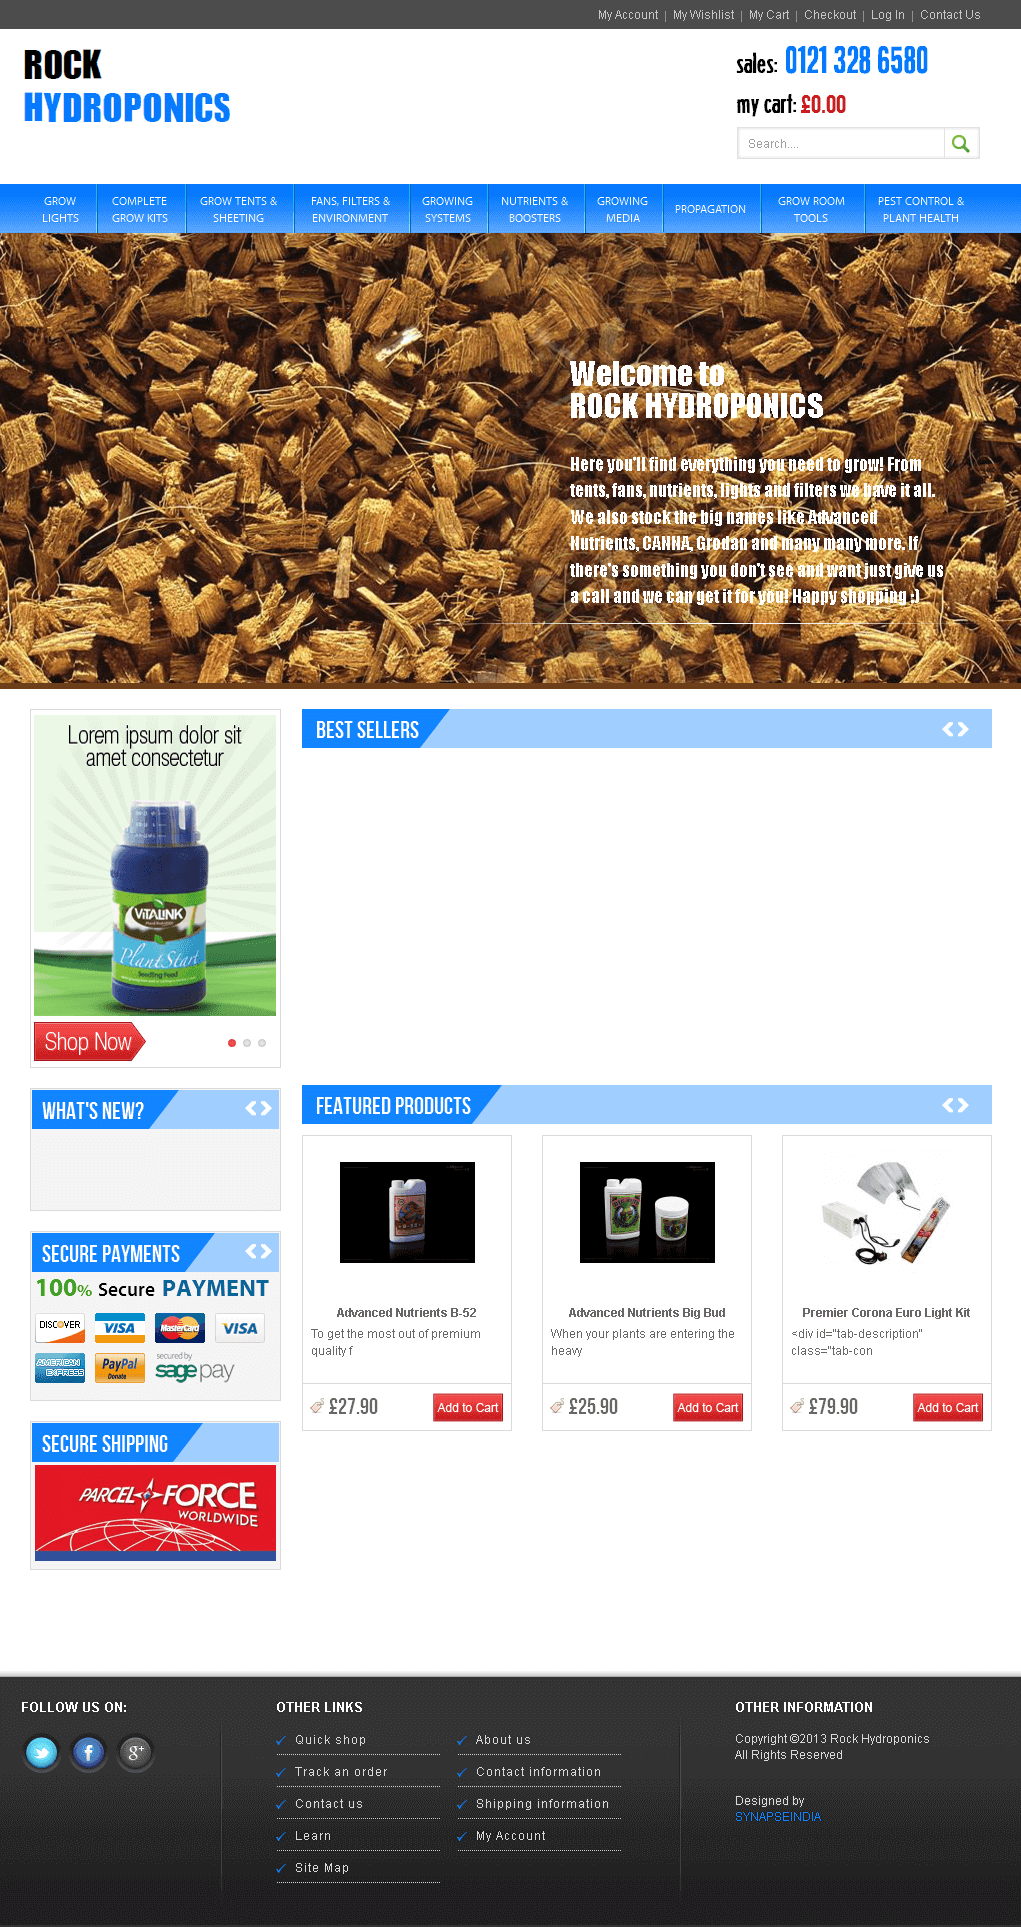 Rockhydroponics.co.uk. - A Magento Based Ecommerce Site